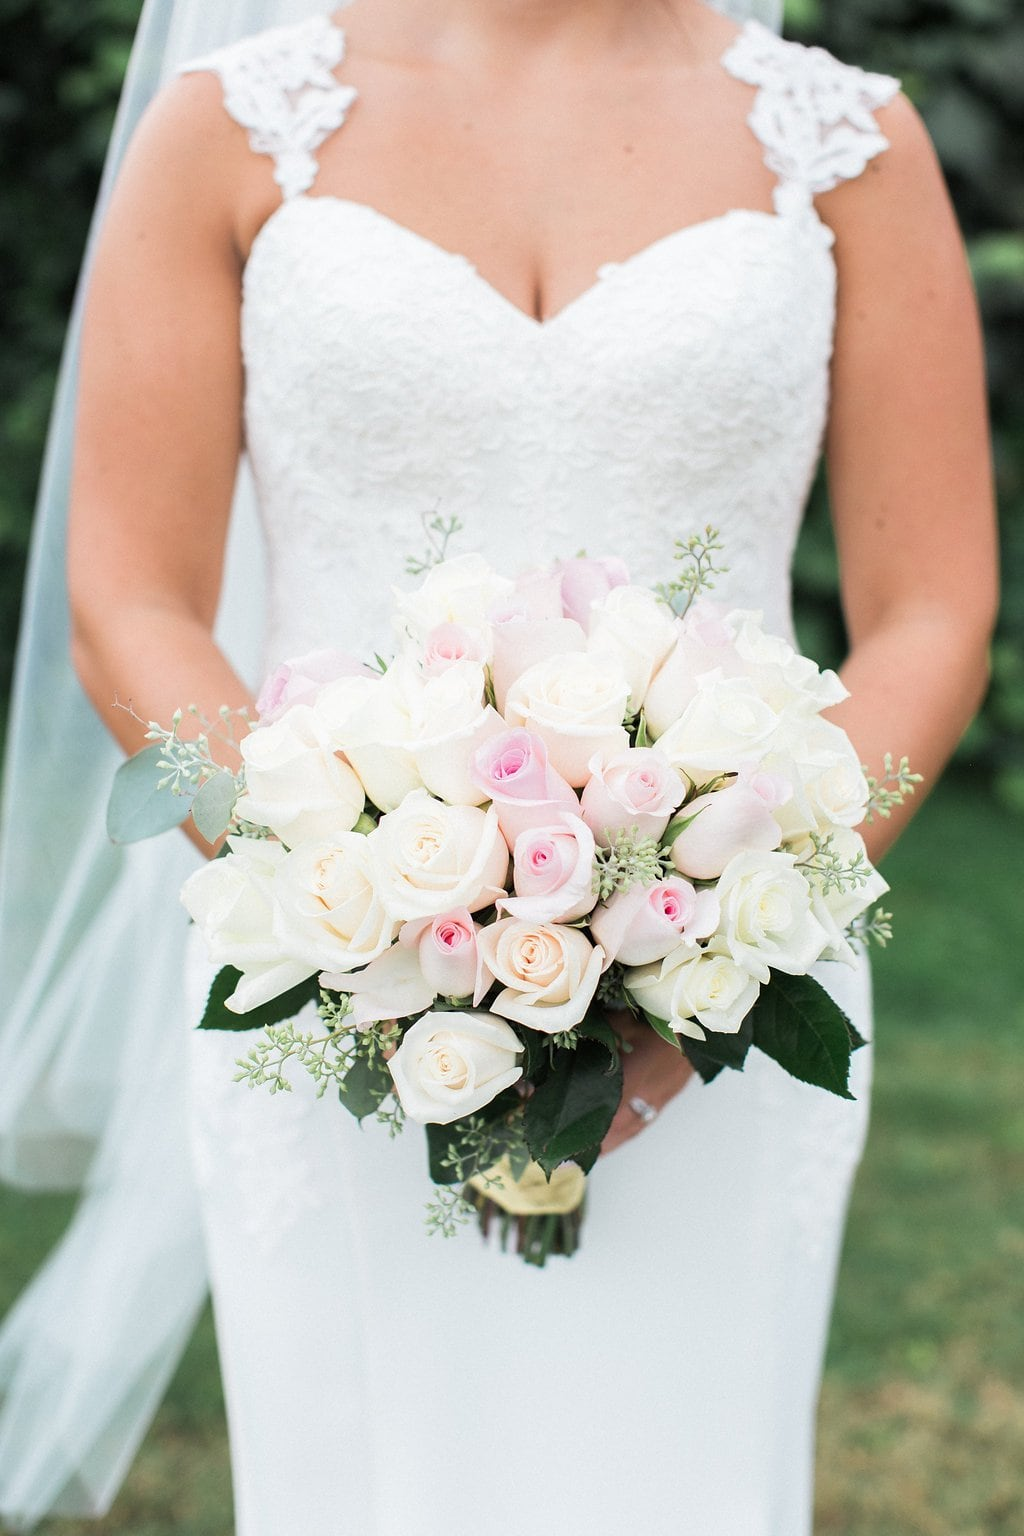 Southpointe Golf Club Wedding - Lauren Renee Designs